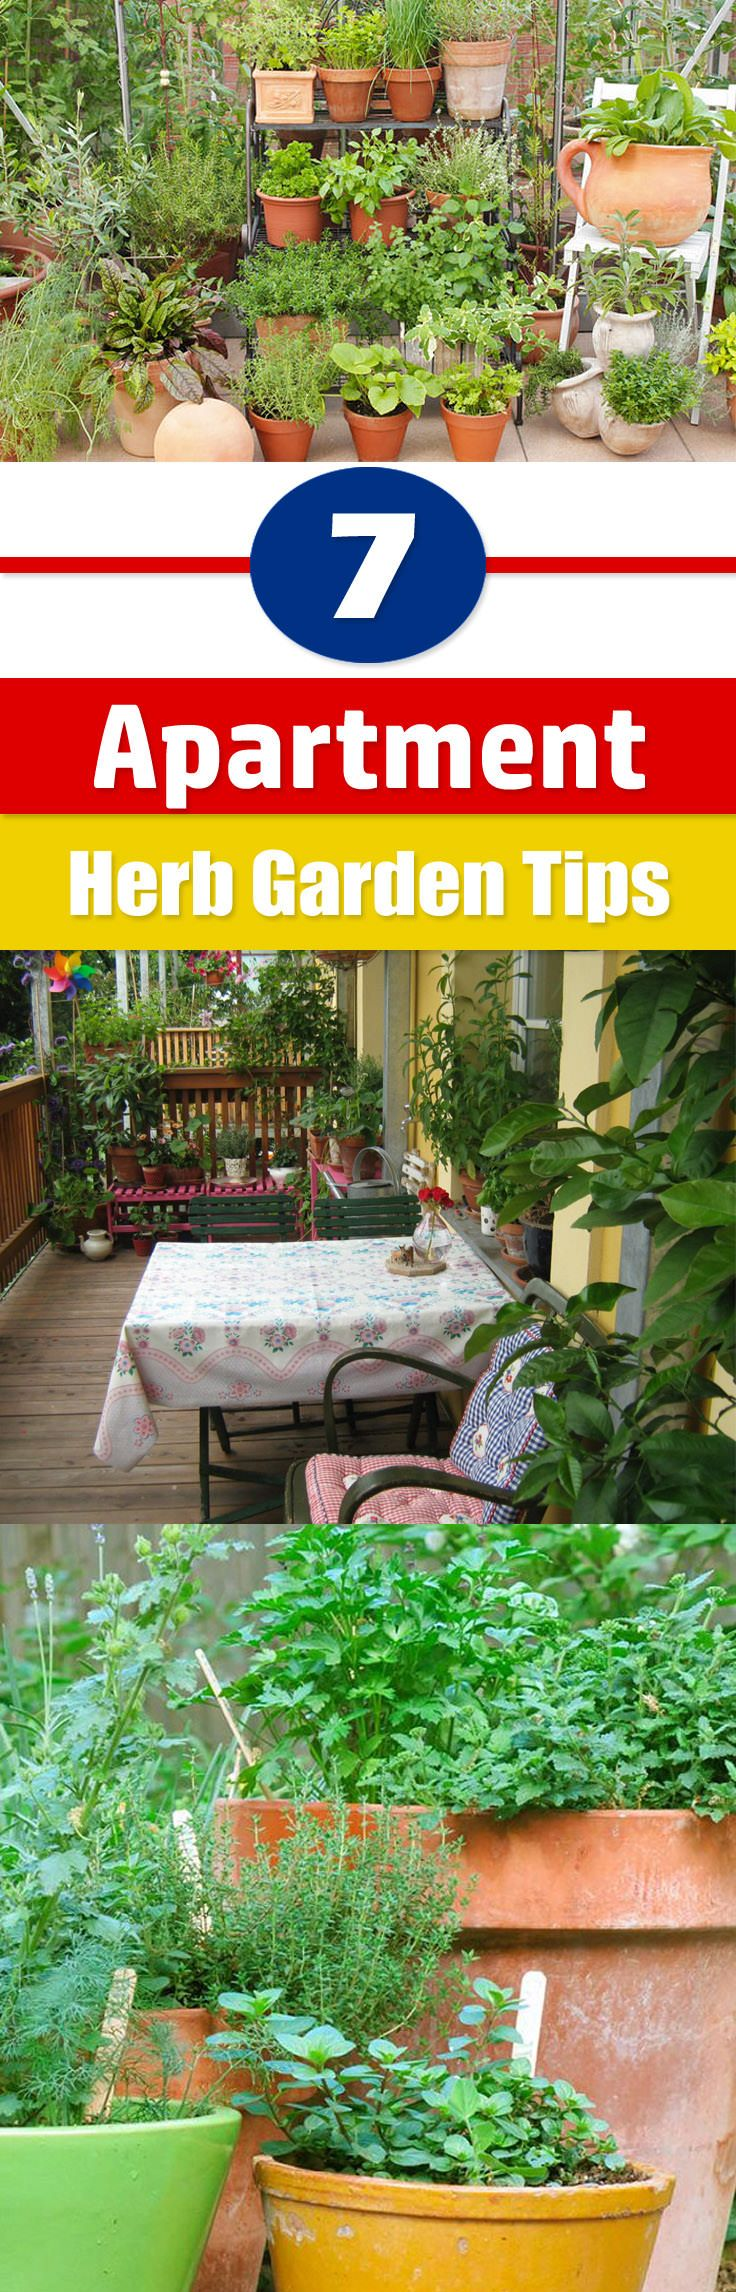 7 Tips For A Fresh Herb Garden In Your City Apartment 400 x 300